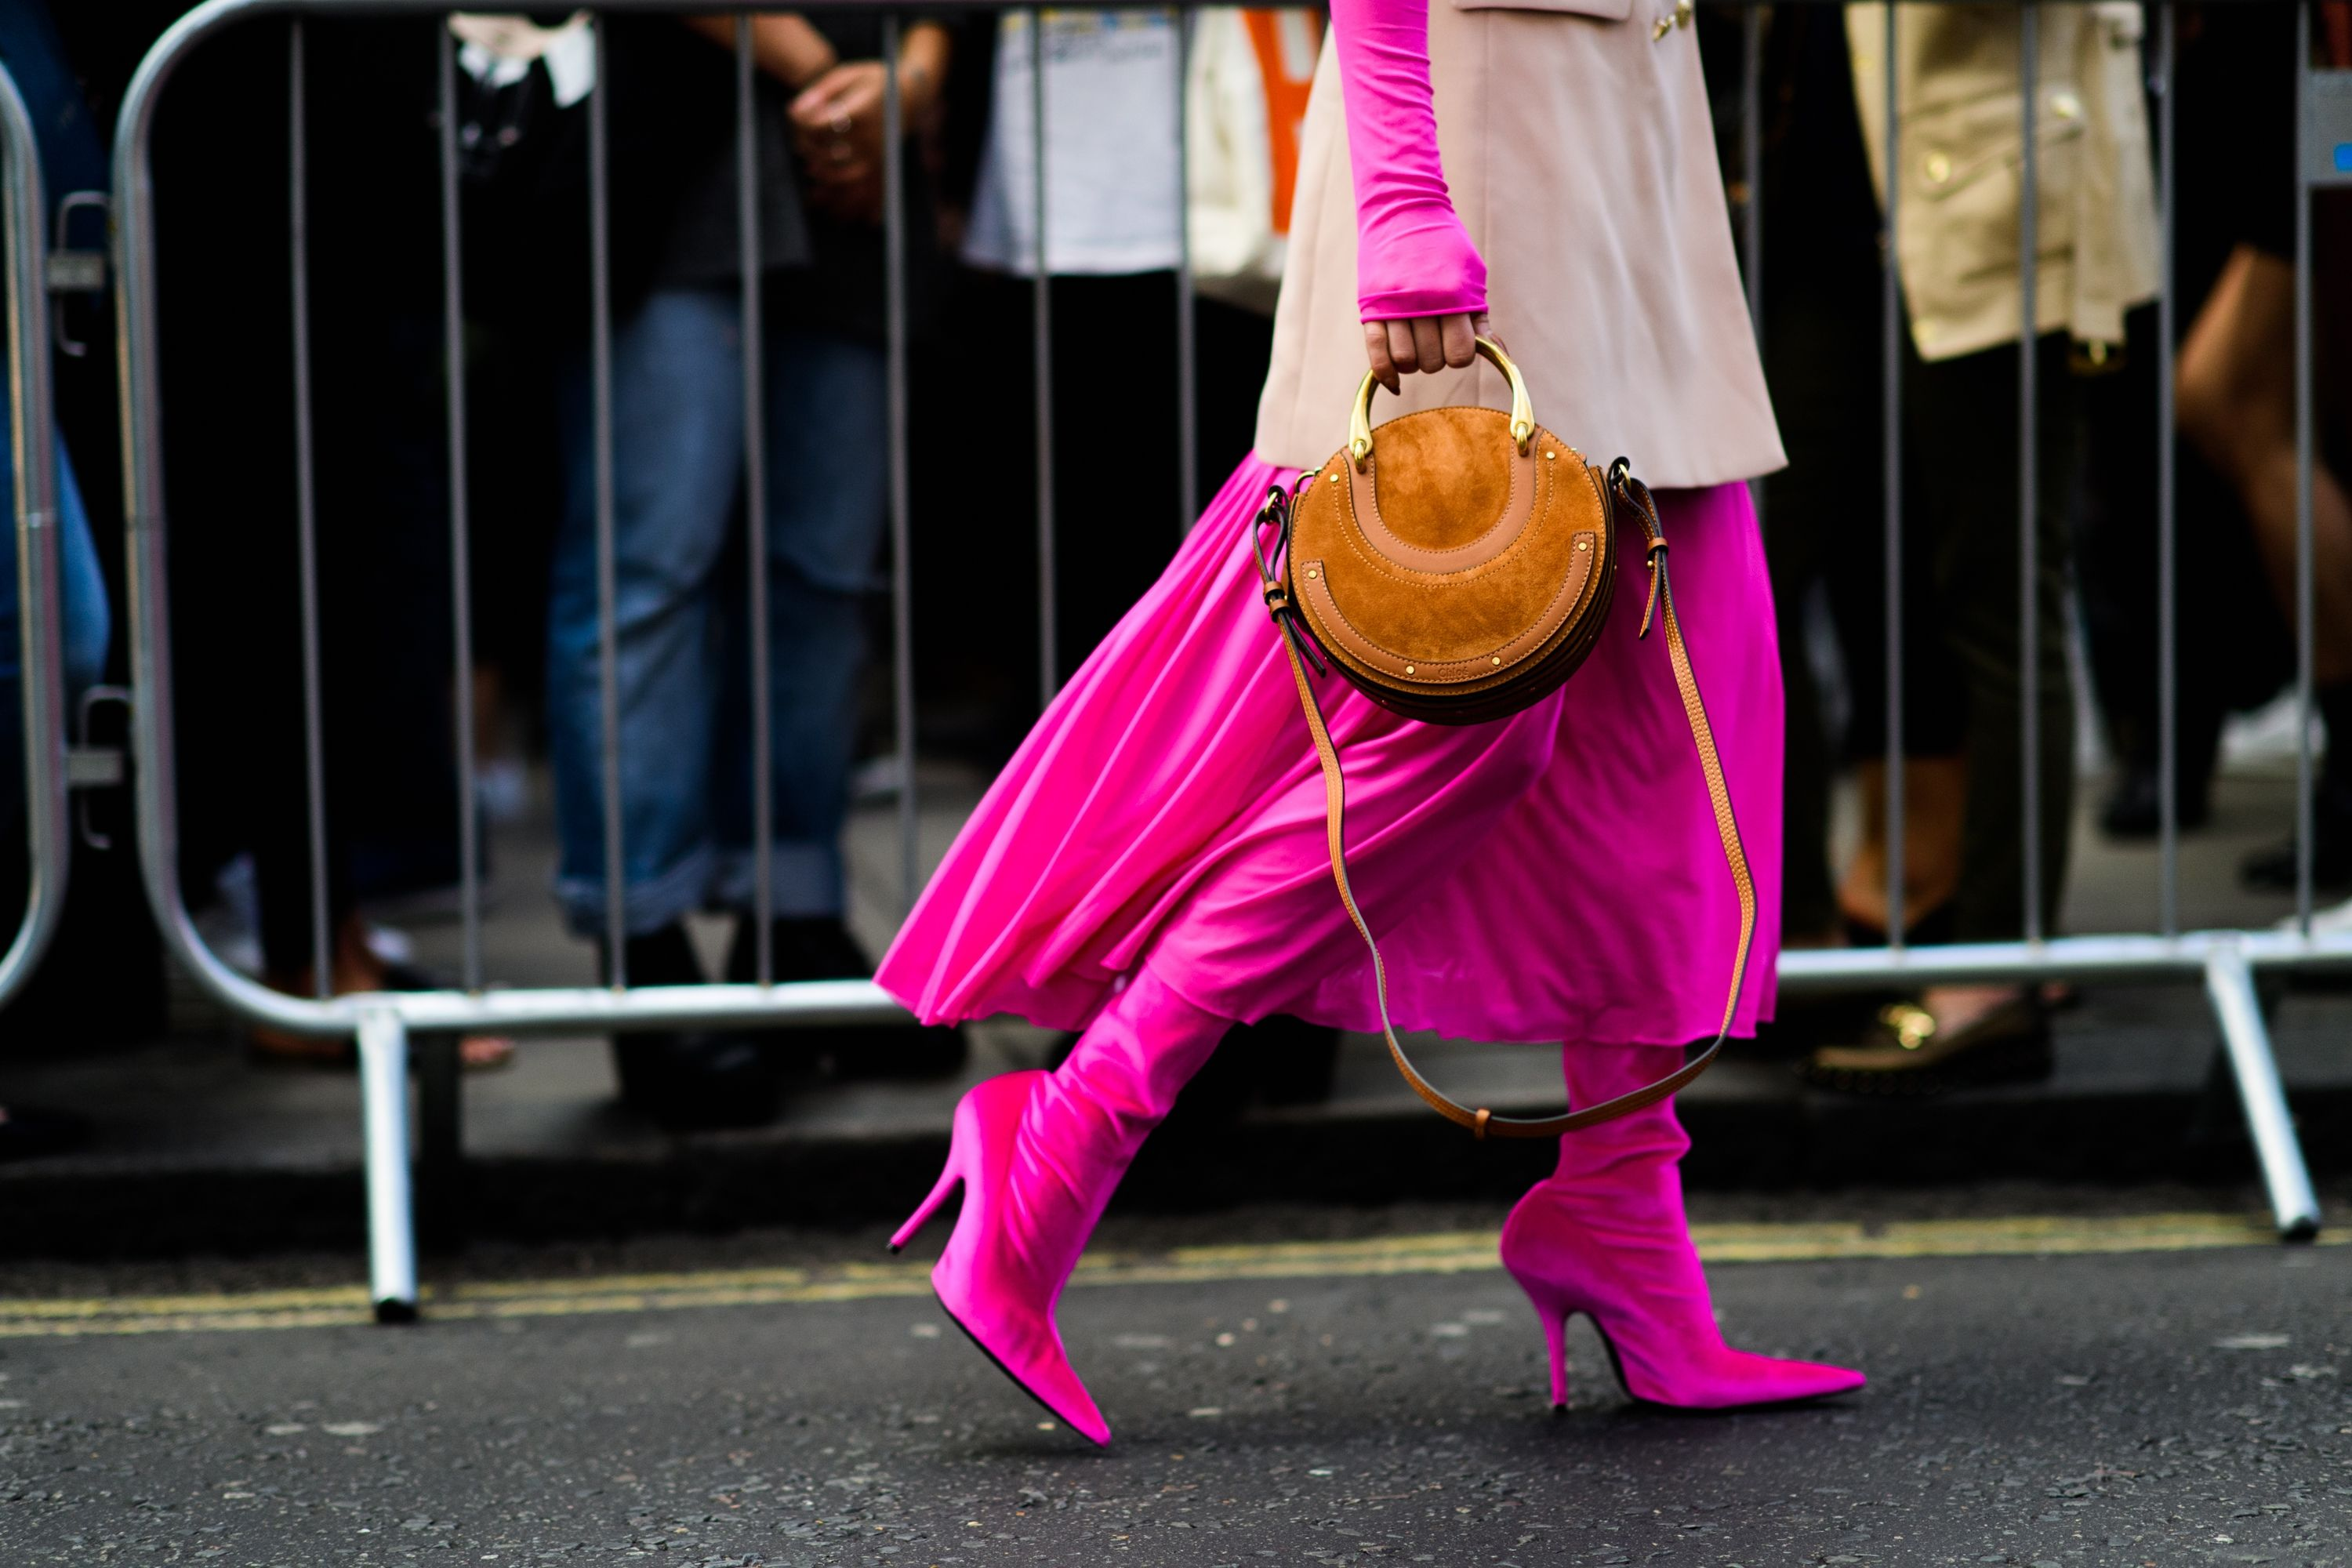 london-lfw-street-style-ss18-day-2-tyler-joe-118-1505754155